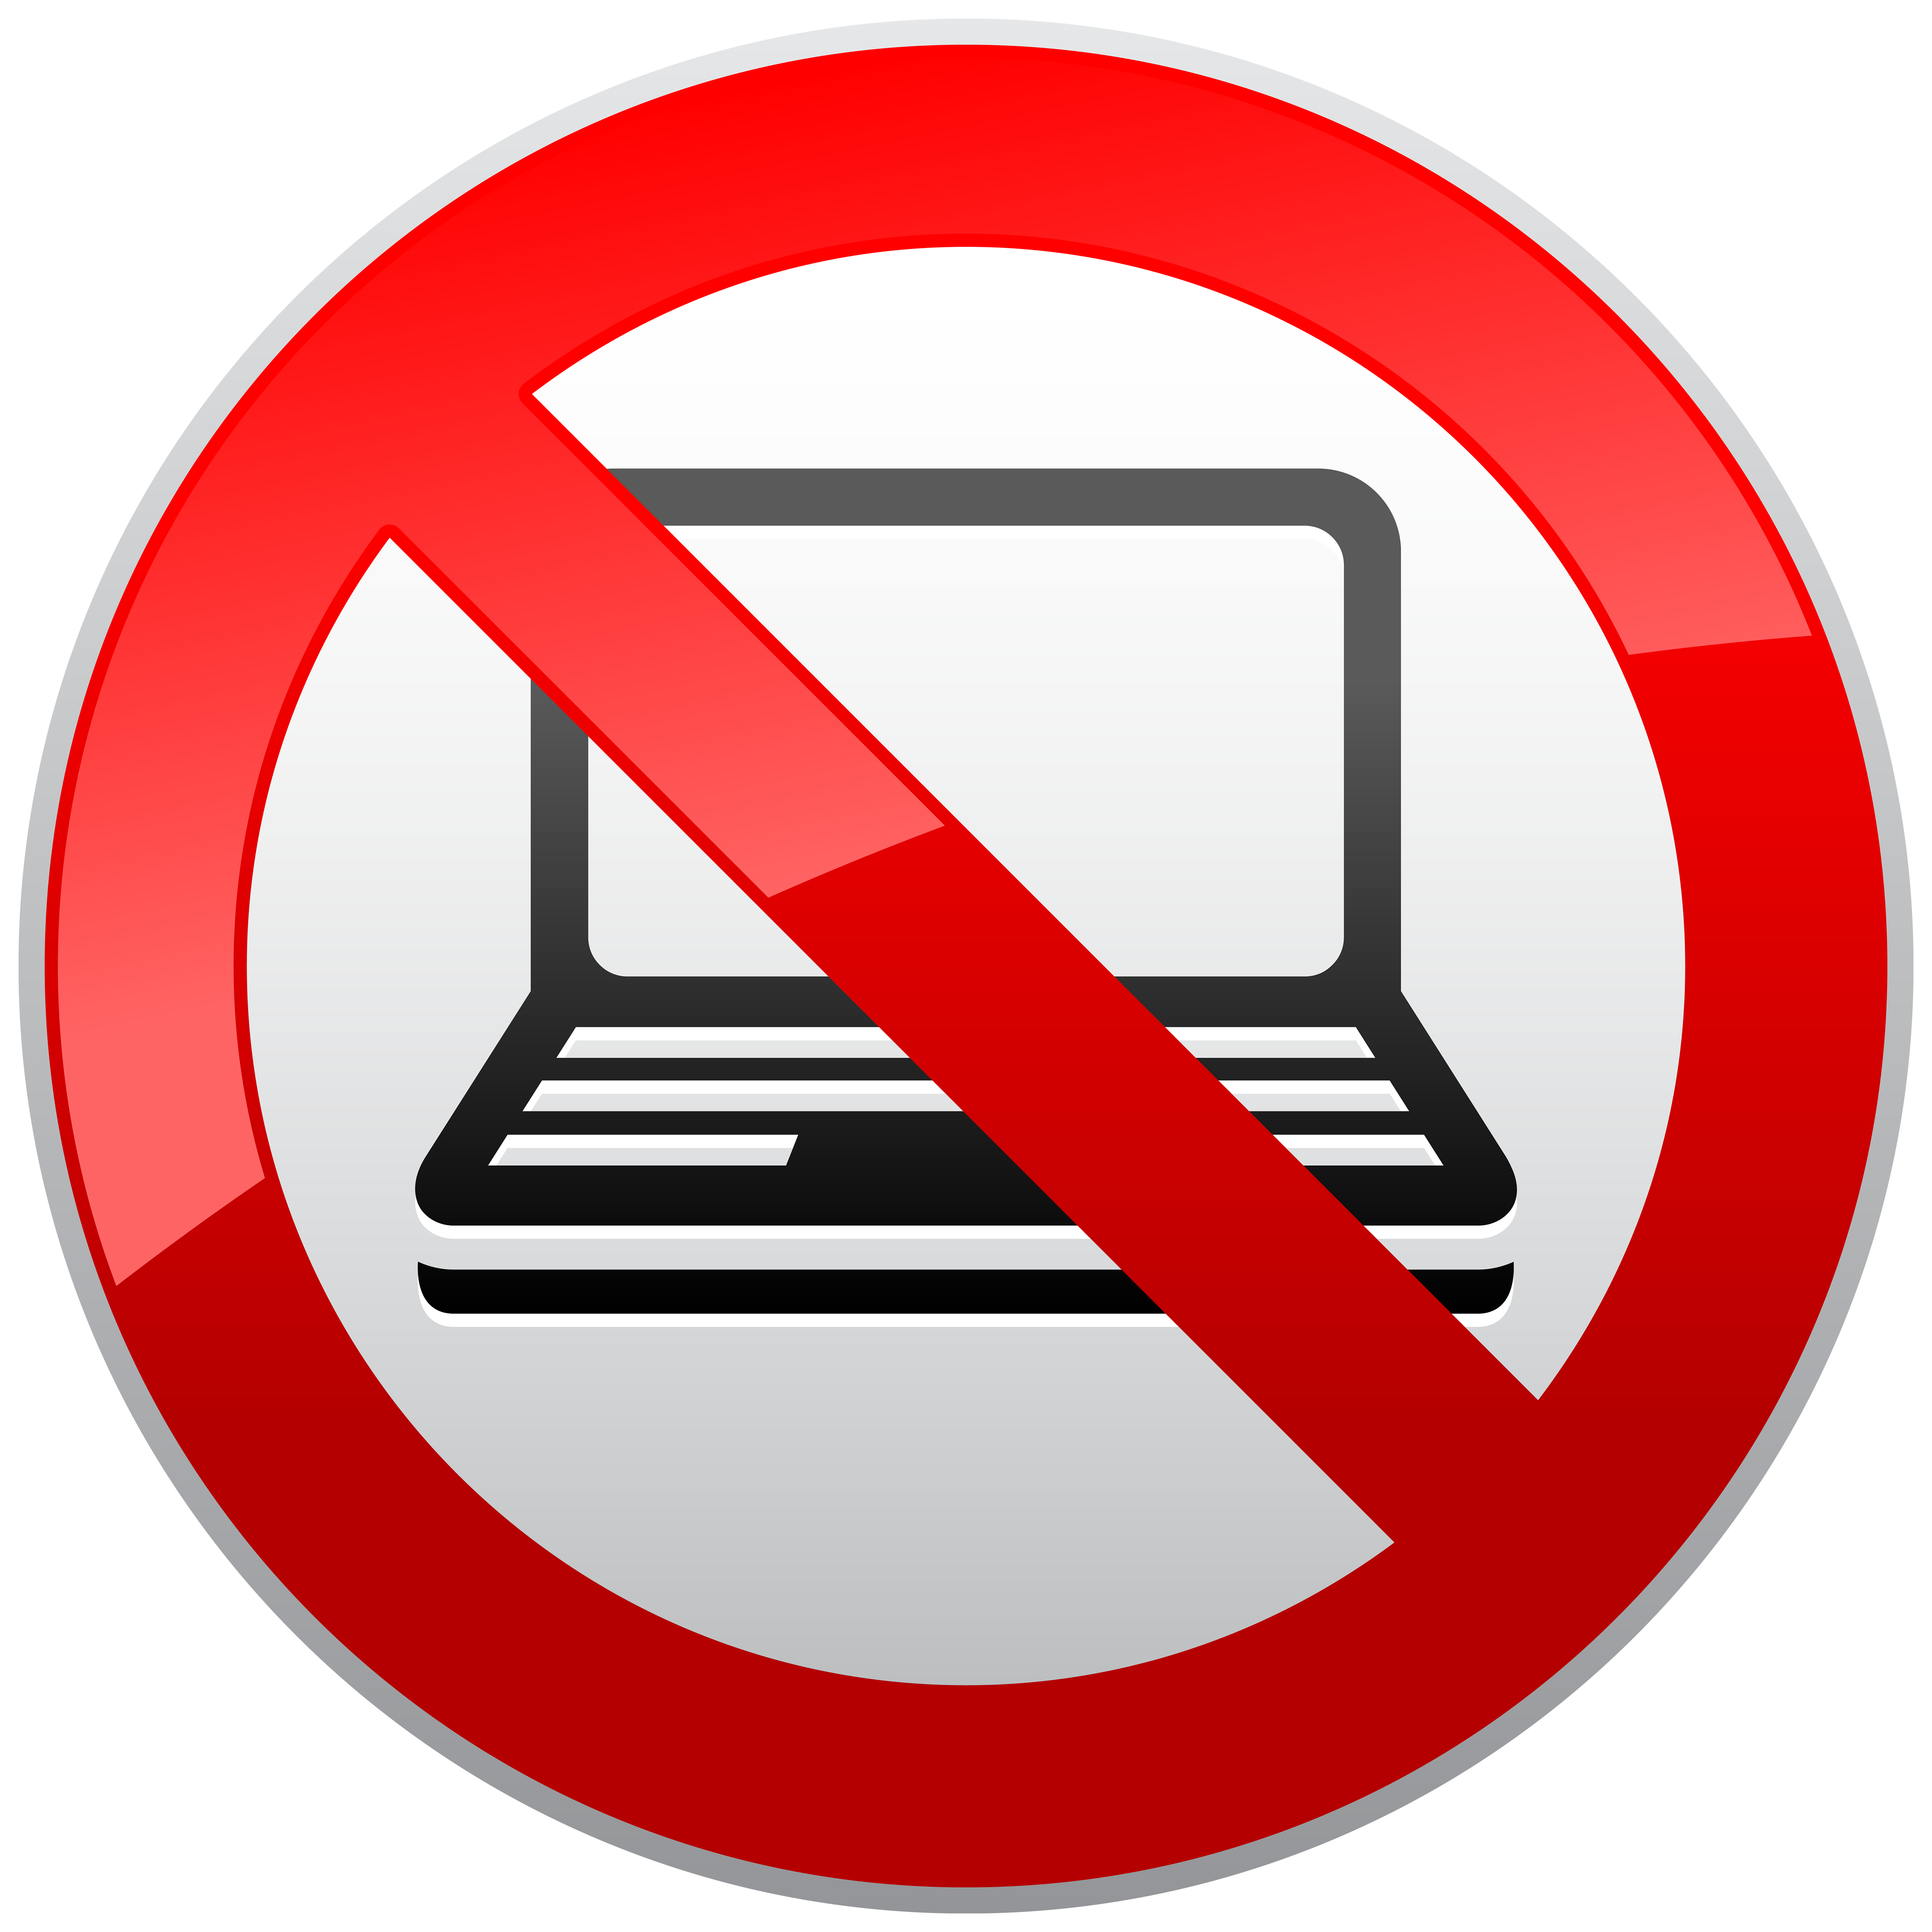 image black and white stock No clipart. Laptop prohibition sign png